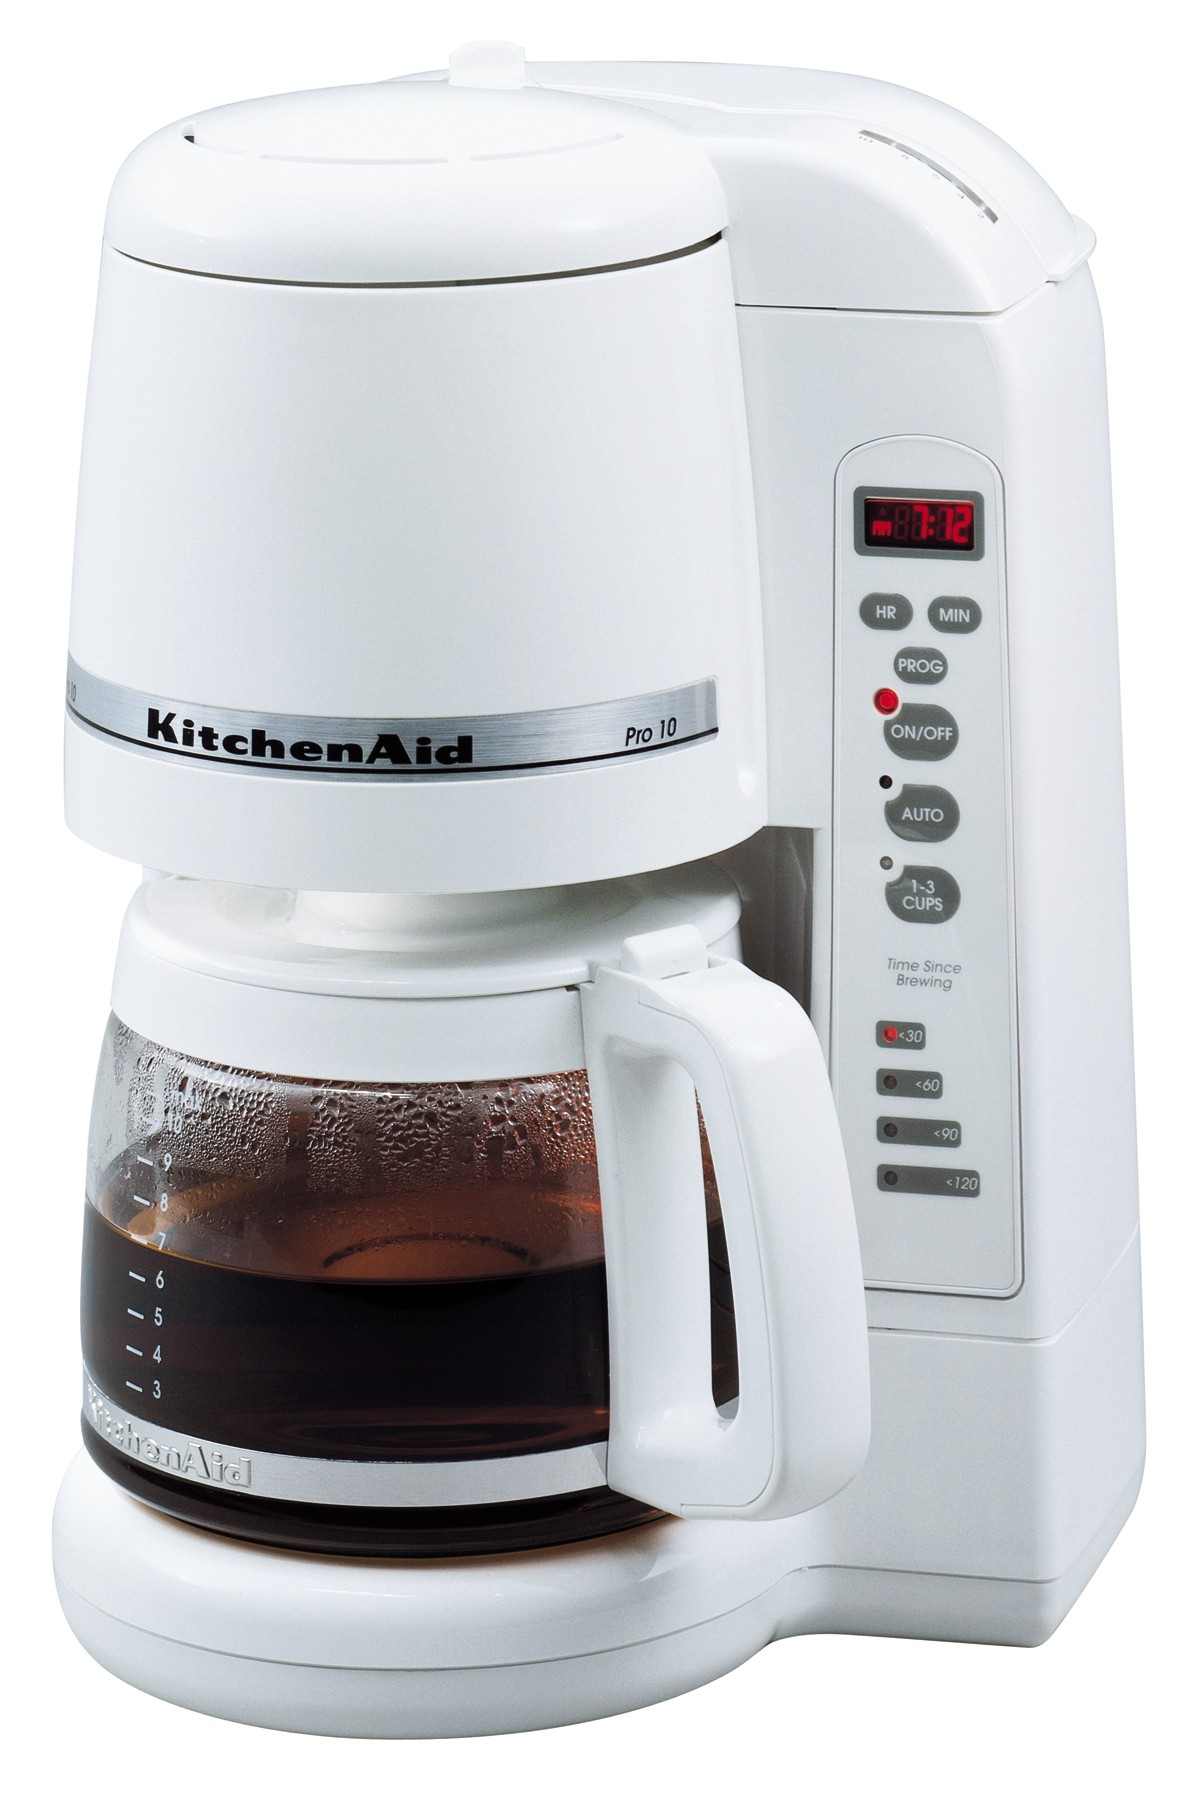 CPSC, Whirlpool Announce Recall of KitchenAid Coffeemakers CPSC.gov